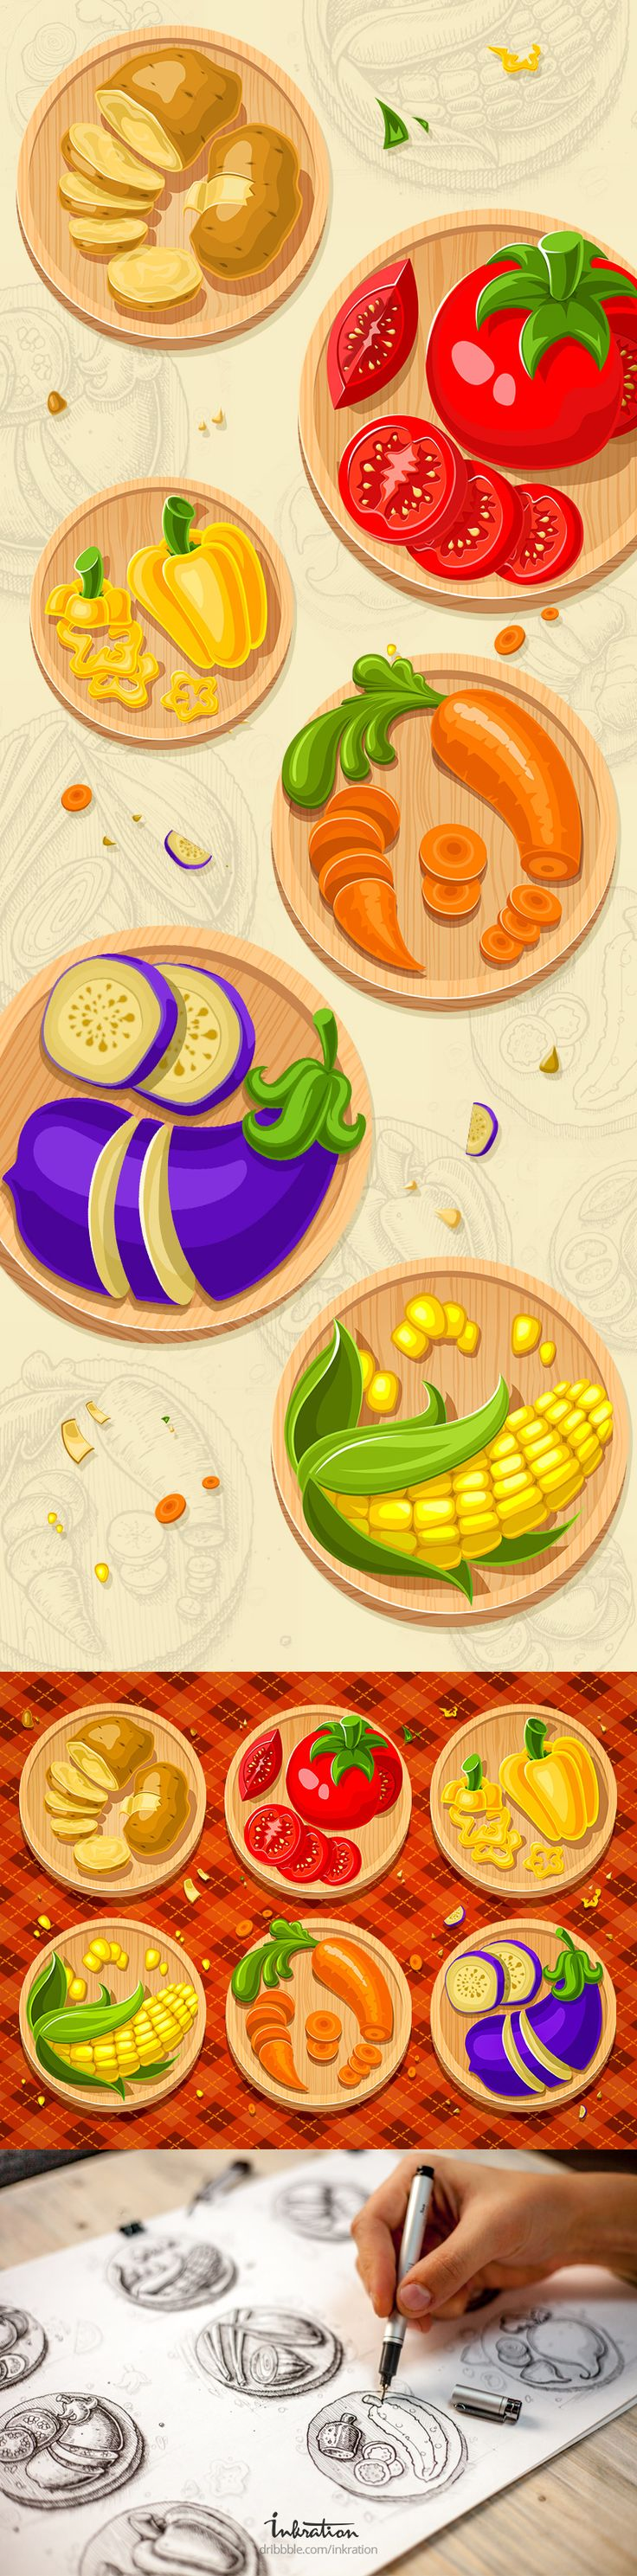 Just finished vegetable icons from previous shot. More details in attachment :)